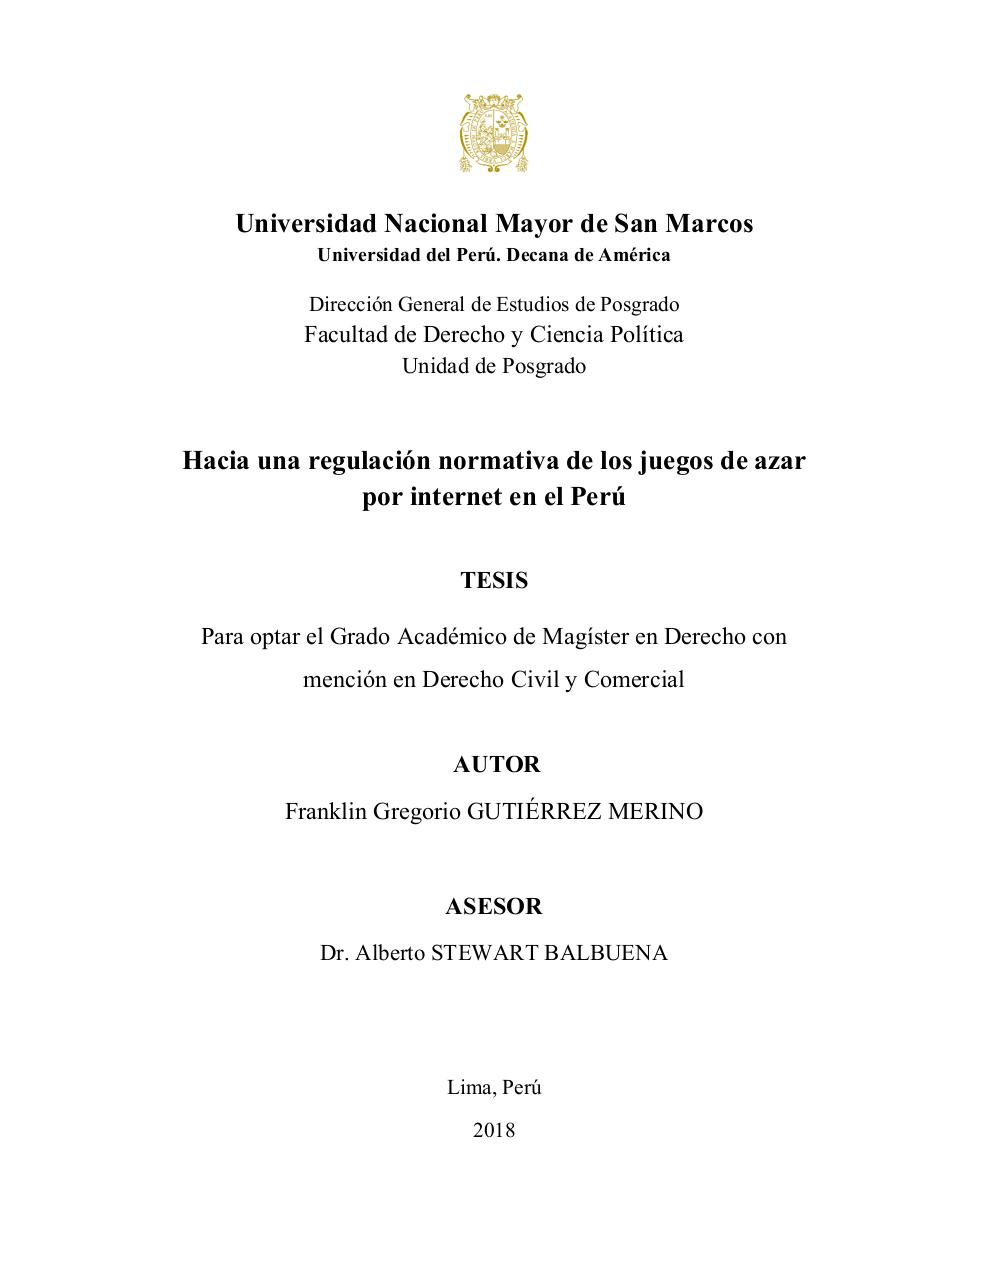 Towards a normative regulation of gambling in Peru.pdf - page 1/192